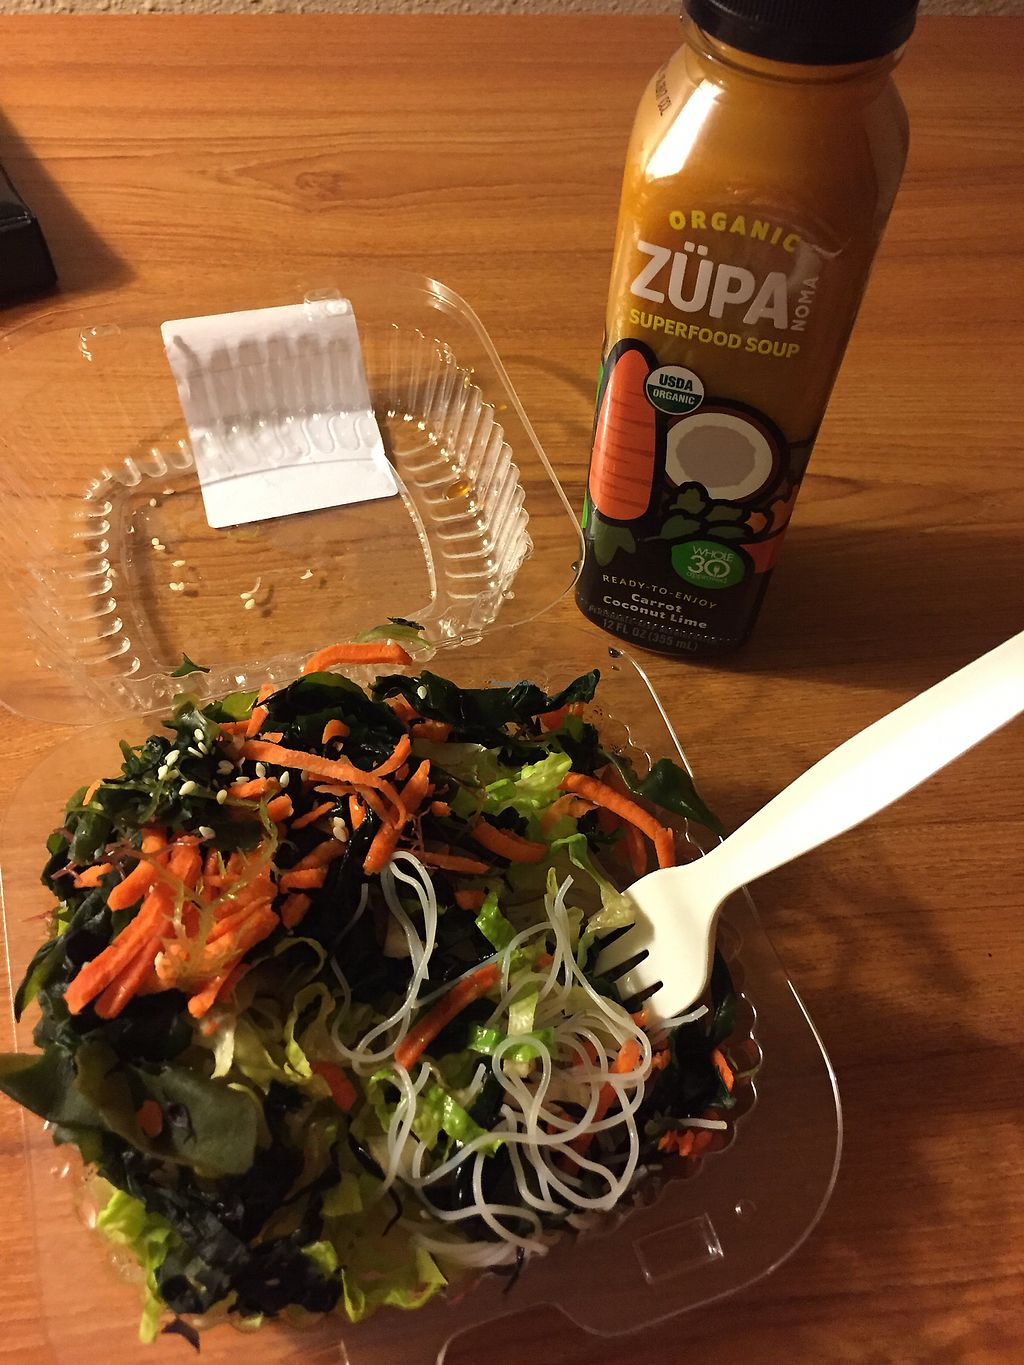 """Photo of La Montanita Co-op - Nob Hill  by <a href=""""/members/profile/chris1"""">chris1</a> <br/>Rice noodle salad  <br/> December 11, 2017  - <a href='/contact/abuse/image/2242/334535'>Report</a>"""